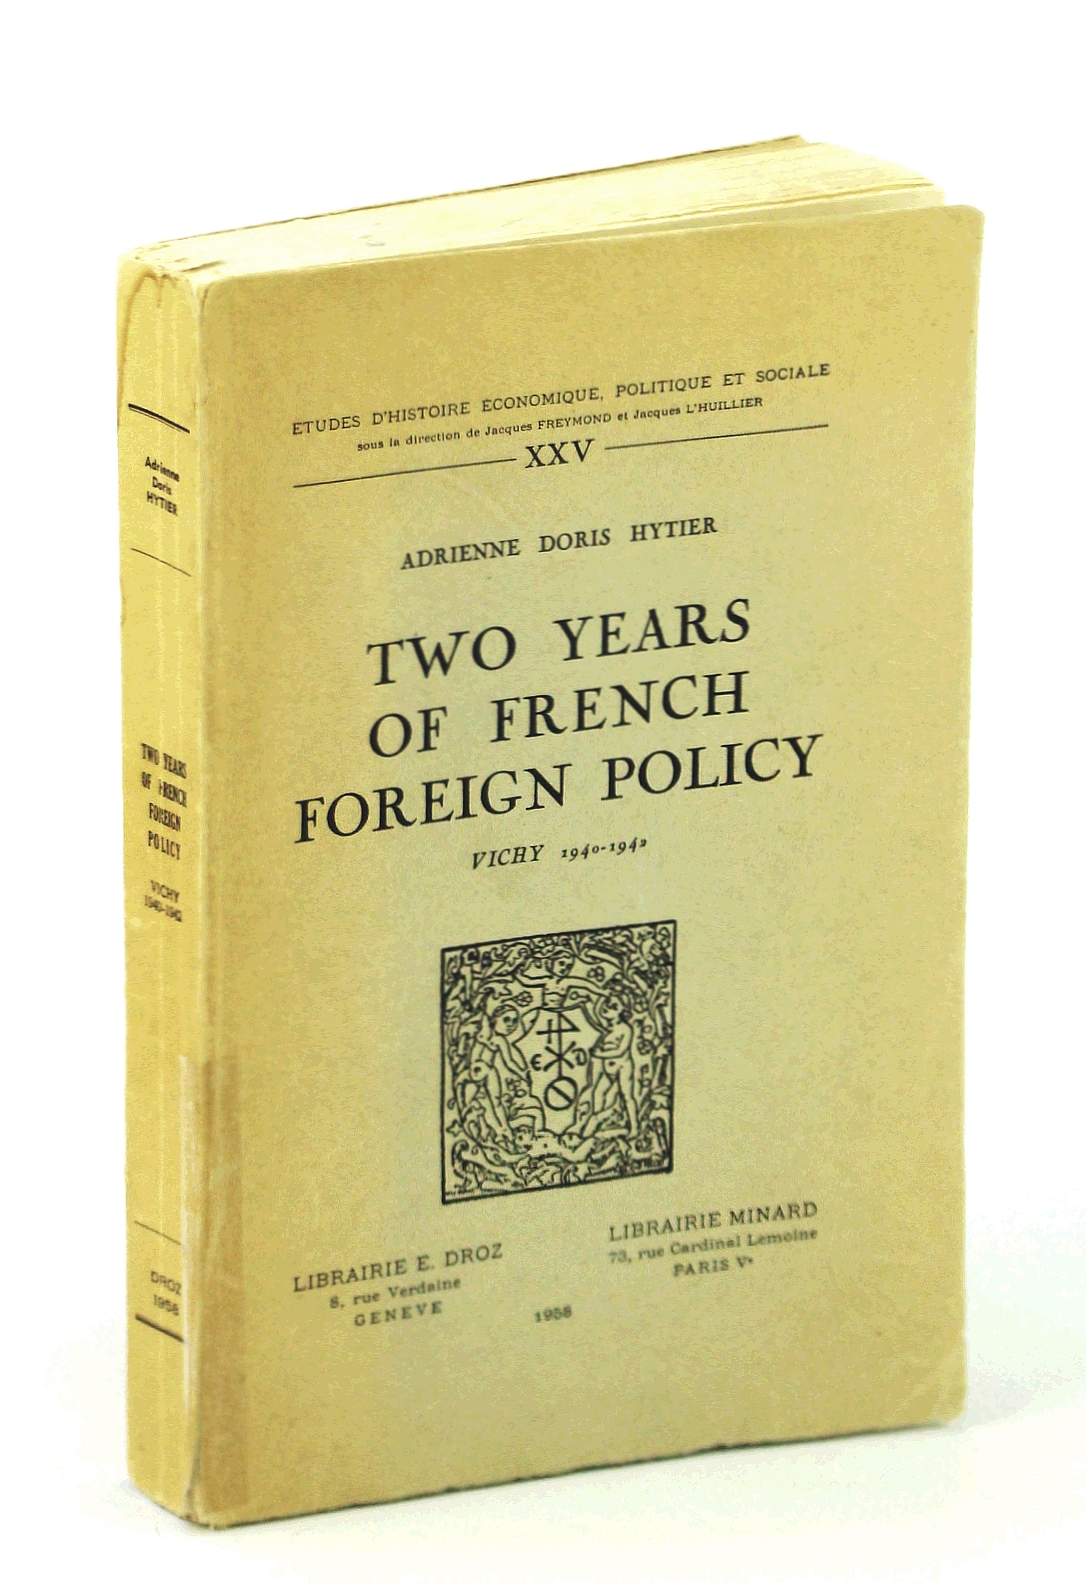 Image for Two Years of French Foreign Policy. Vichy 1940-1942 (tudes d'histoire conom...